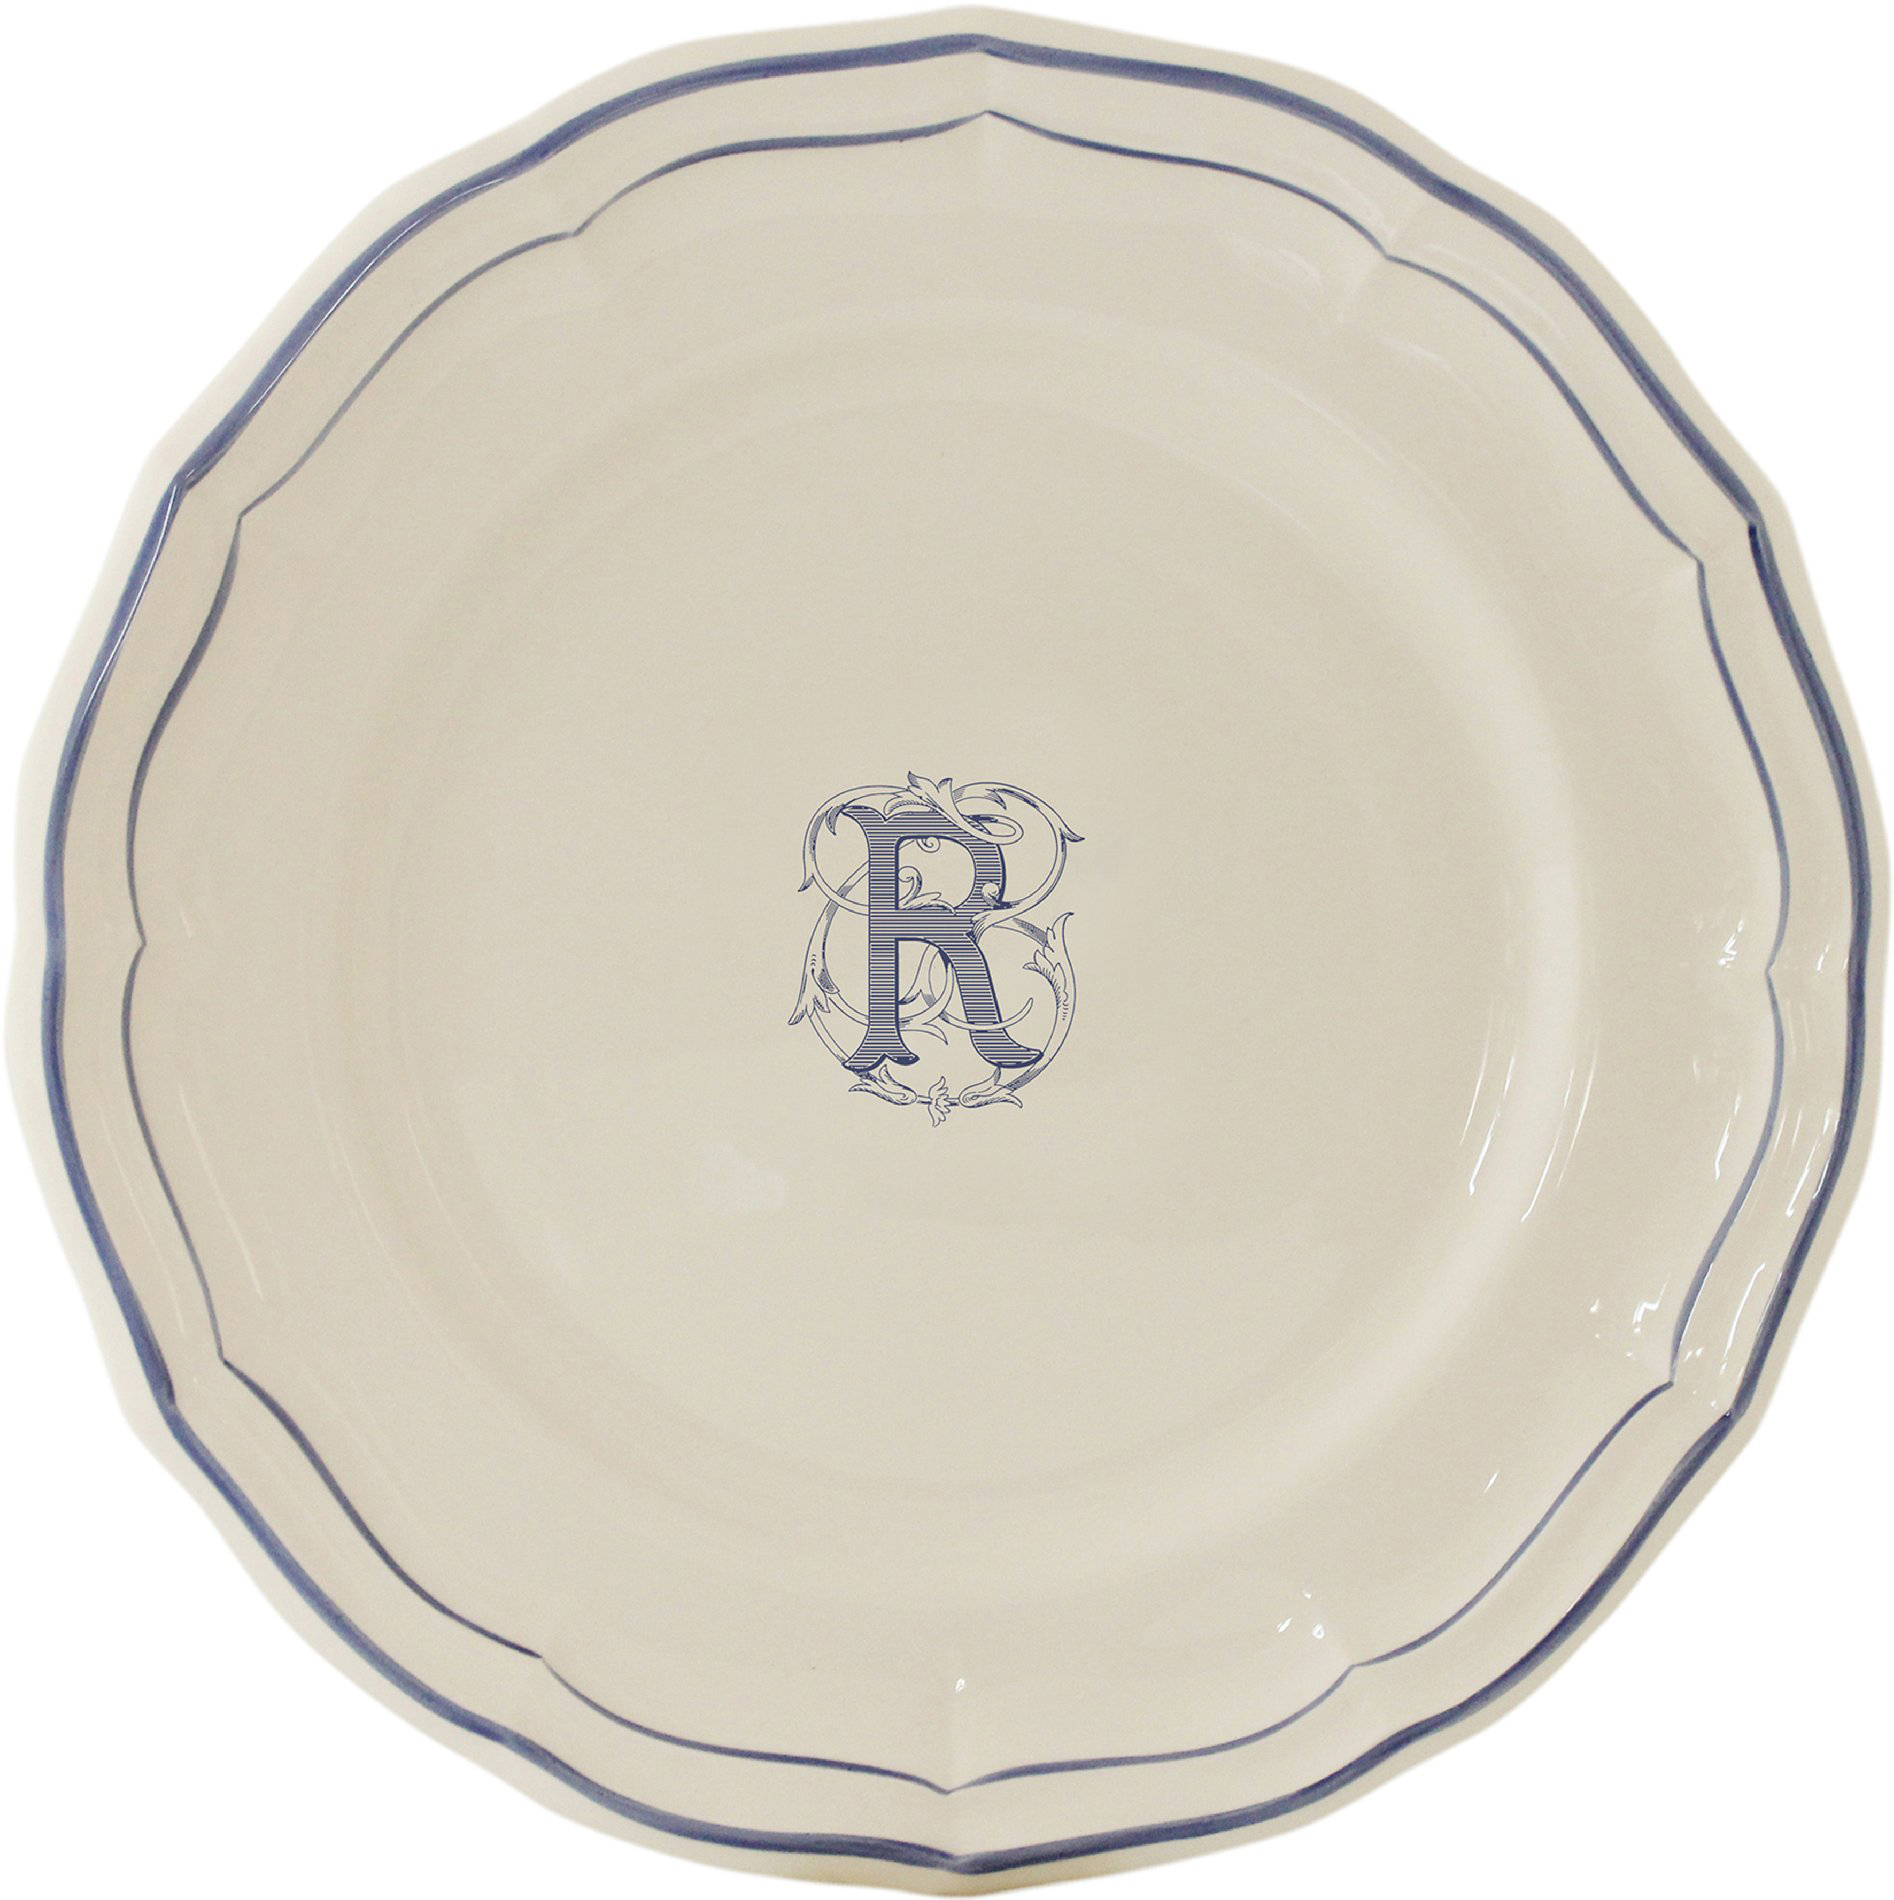 Filet Bleu Monogram Canape Plate 6.5 in. Diameter  sc 1 st  Gracious Style & Gien France Filet Bleu Monogram Dinnerware | Gracious Style